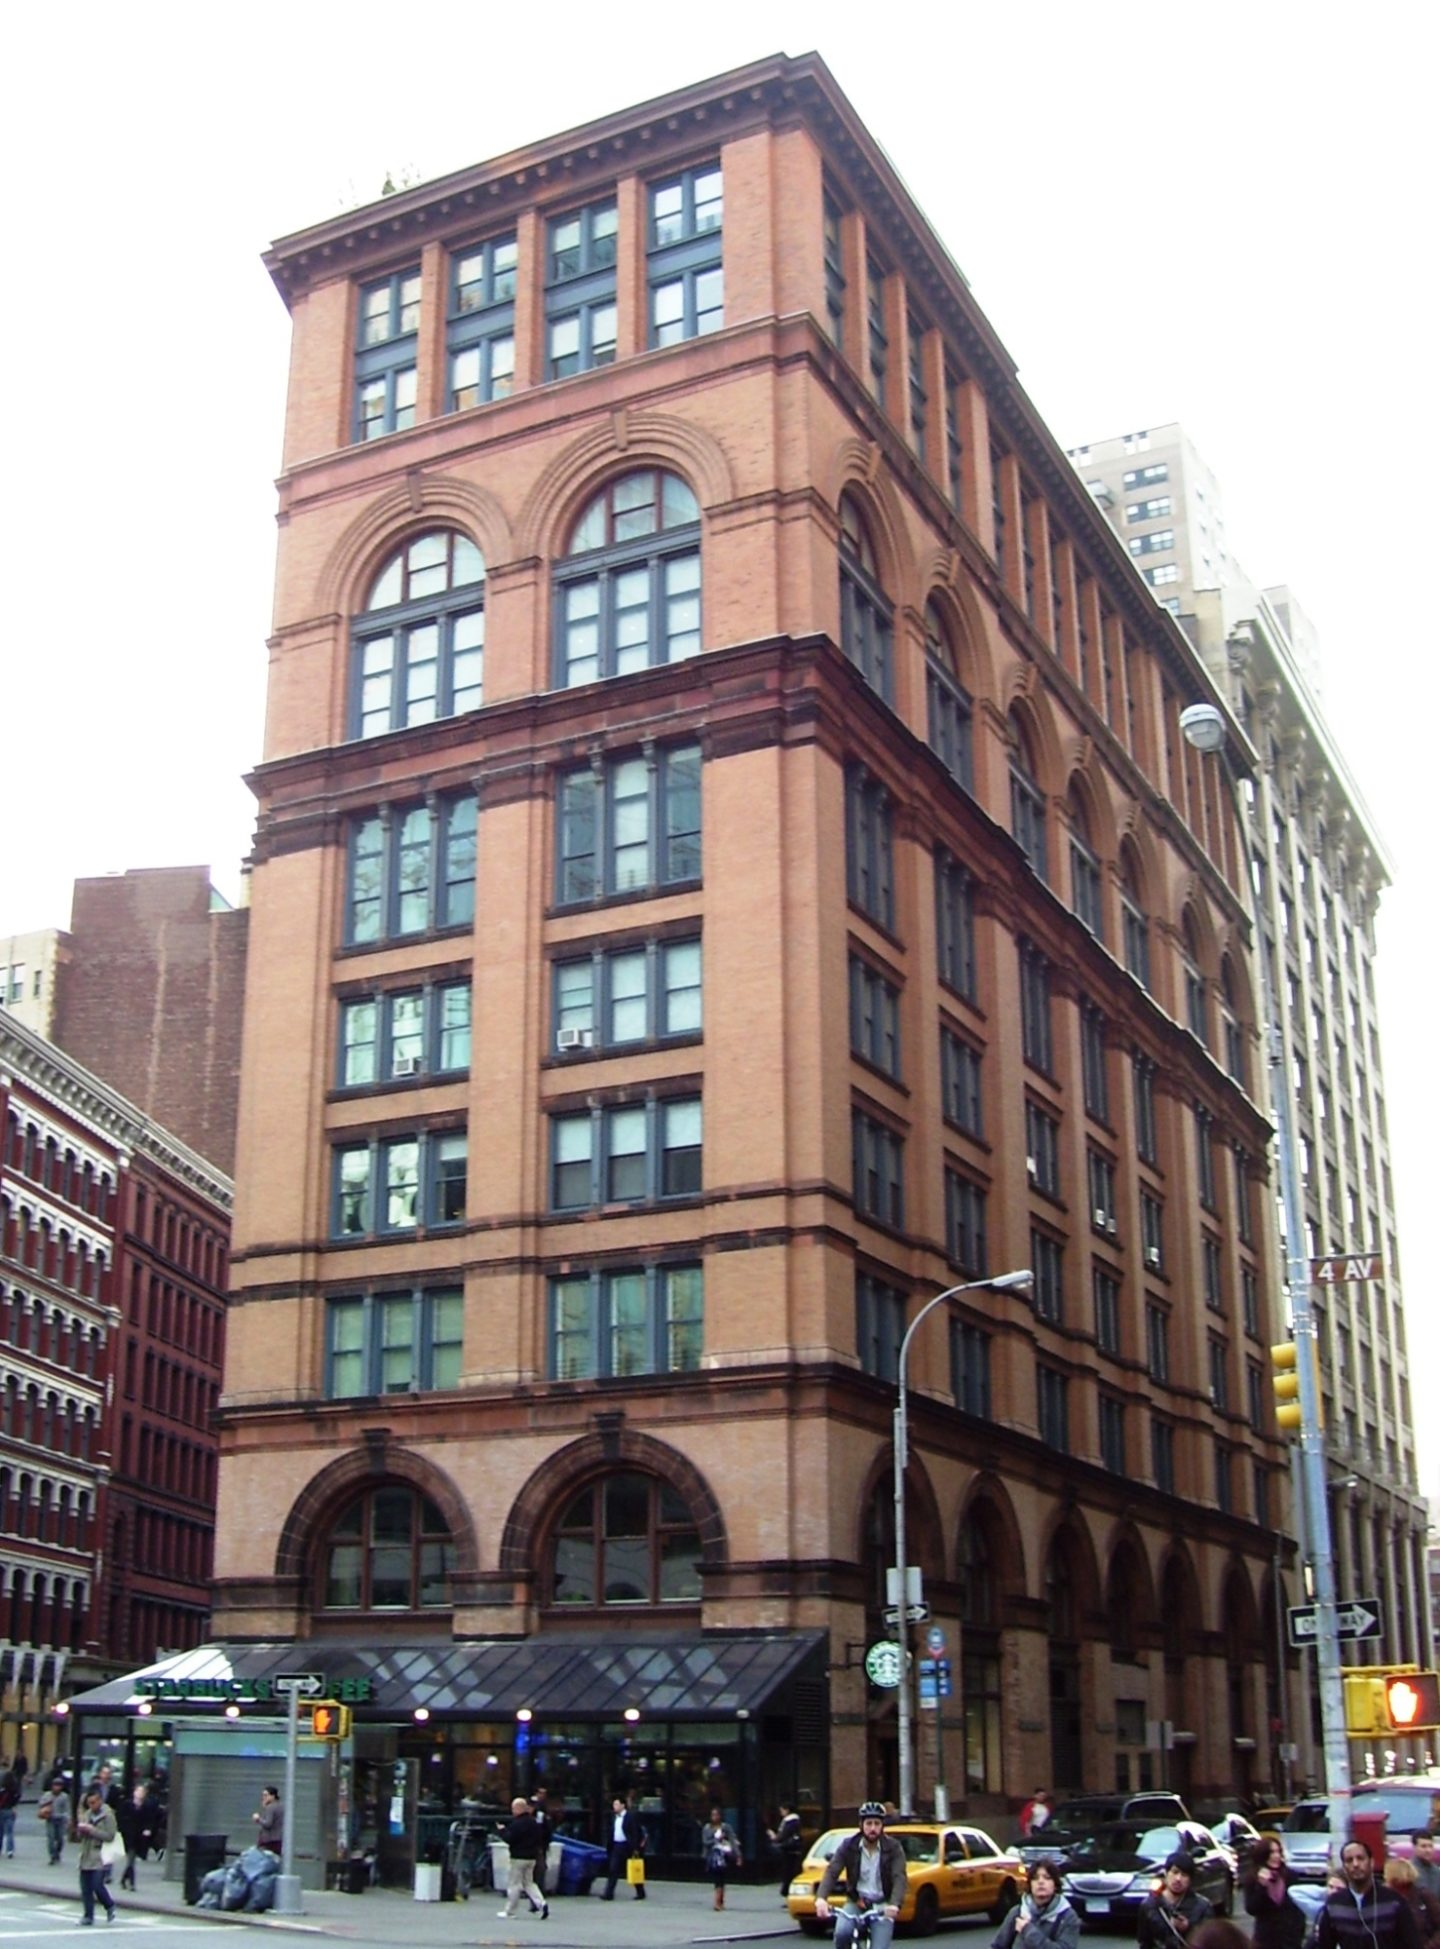 "<p>Contemporary view of 21 Astor Place, otherwise known as ""13 Astor Place"" and ""Clinton Hall"" built on the site of the original Clinton Hall and home to the <em>Institute far Yiddisher Bildung</em>. Image from&nbsp;<a href=""https://en.wikipedia.org/wiki/Astor_Place#/media/File:Clinton_Hall_Mercantile_Library_Bldg_13_Astor_Place.jpg"">Wikipedia</a>.</p>"